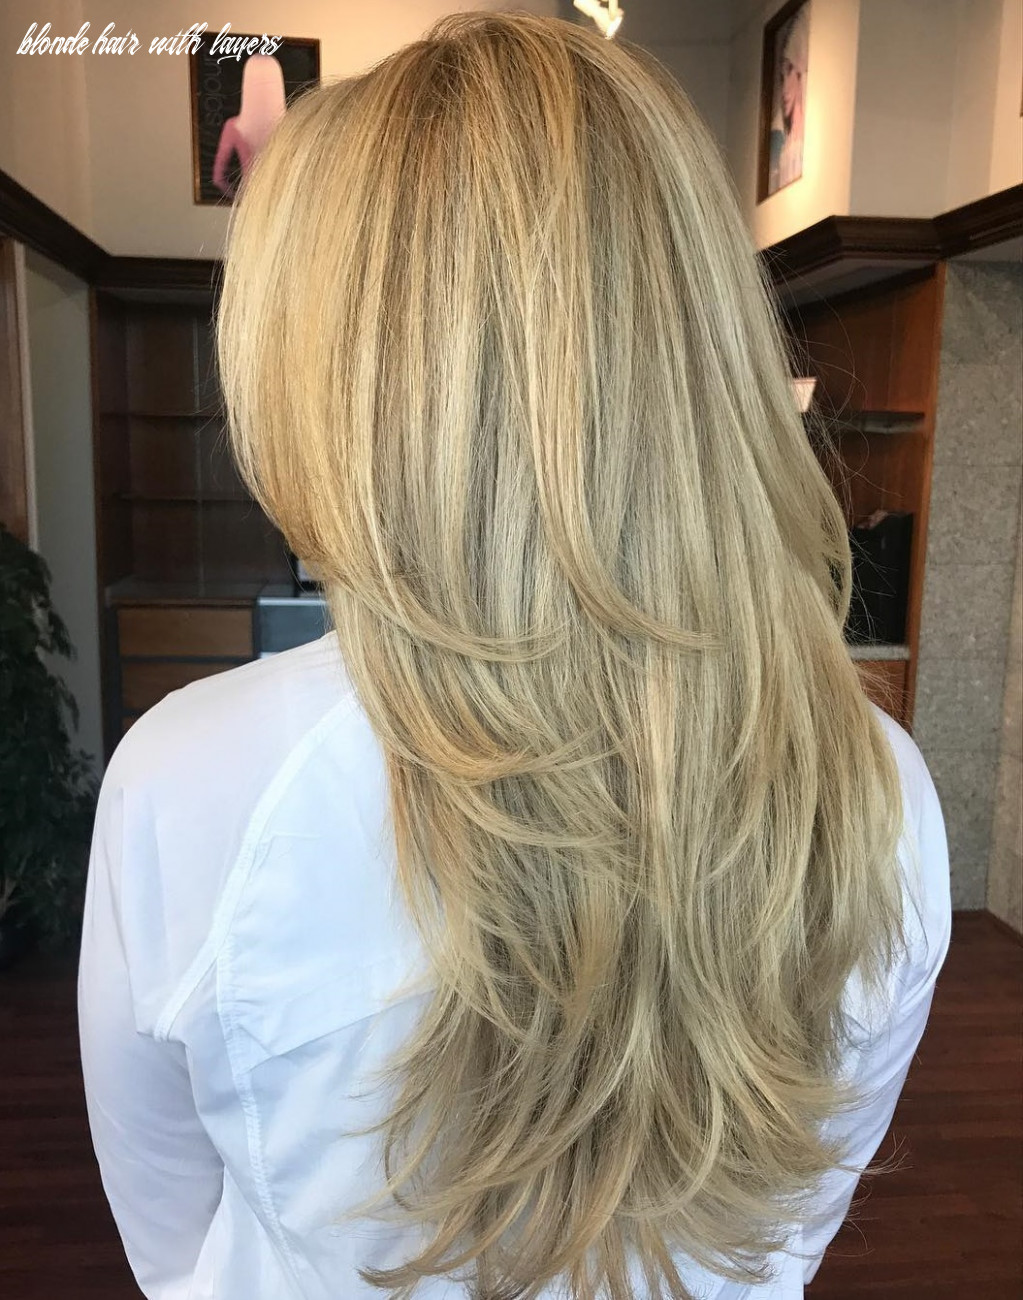 12 new long hairstyles with layers for 12 hair adviser blonde hair with layers